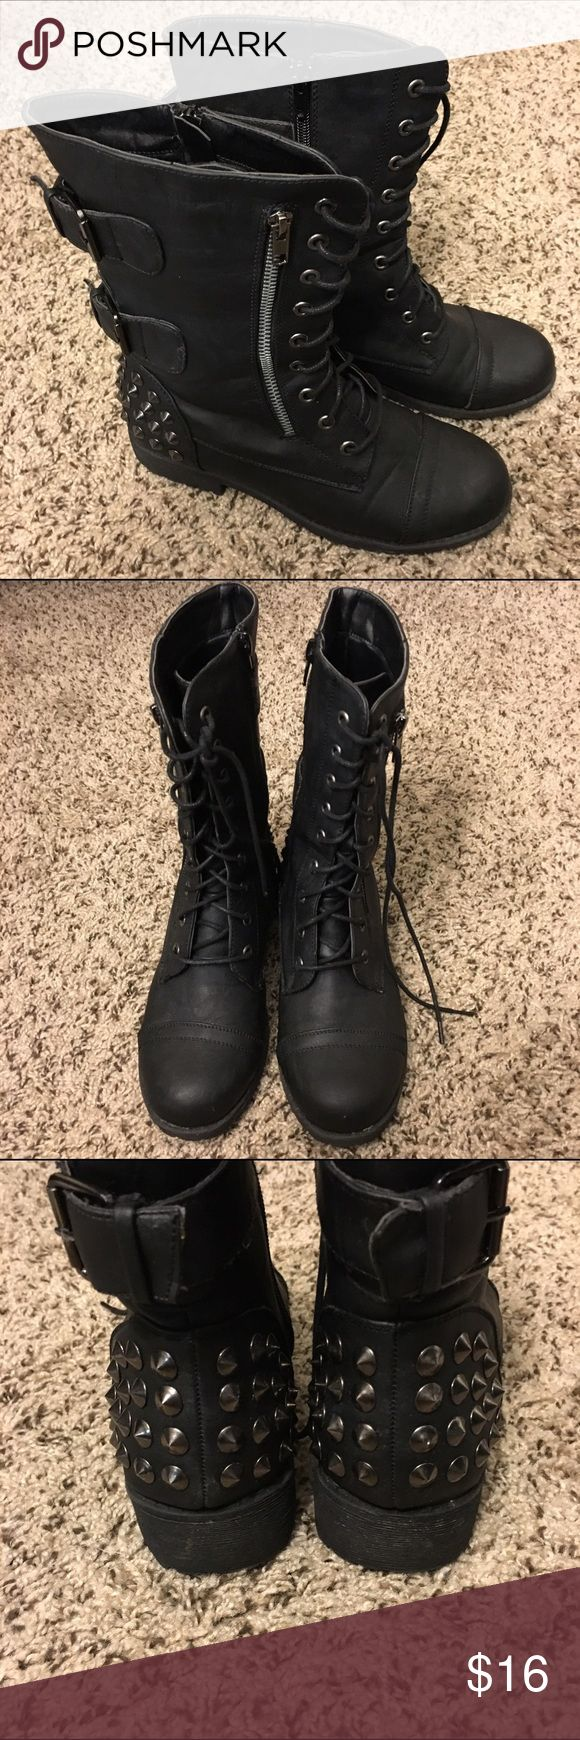 studded combat boots SIZE 7.5. they're a synthetic material, not leather. i only wore them a few times for a cosplay, but they ended up being too big for me. Shoes Combat & Moto Boots